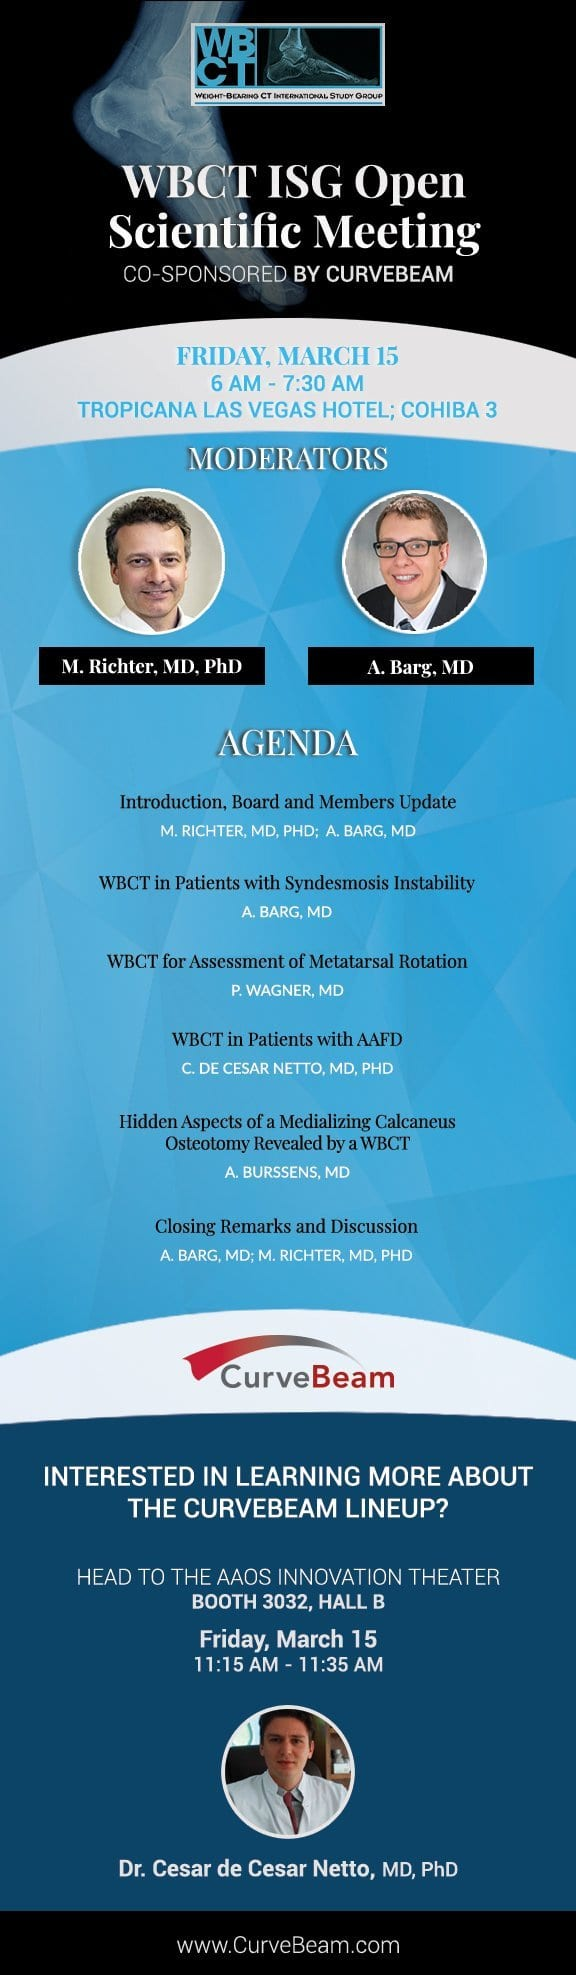 Weight Bearing CT Events At AAOS